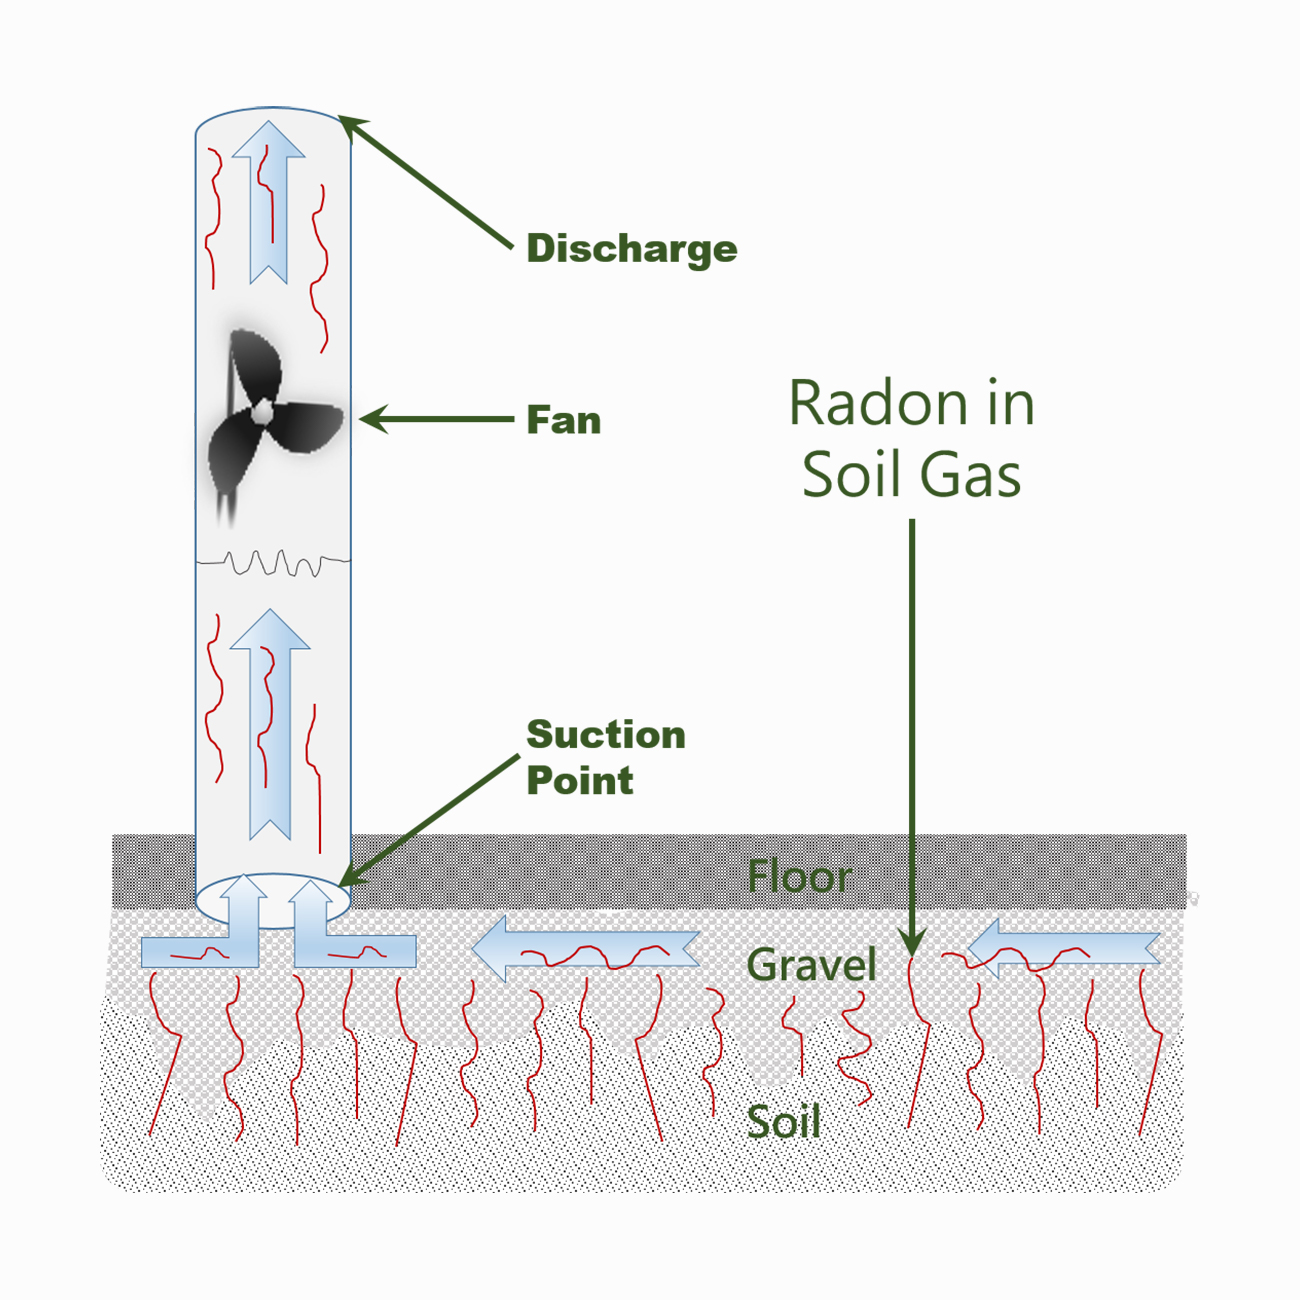 hight resolution of to remove radon reduce radon or get rid of radon is called radon mitigation or radon remediation by far the most common radon mitigation technique is